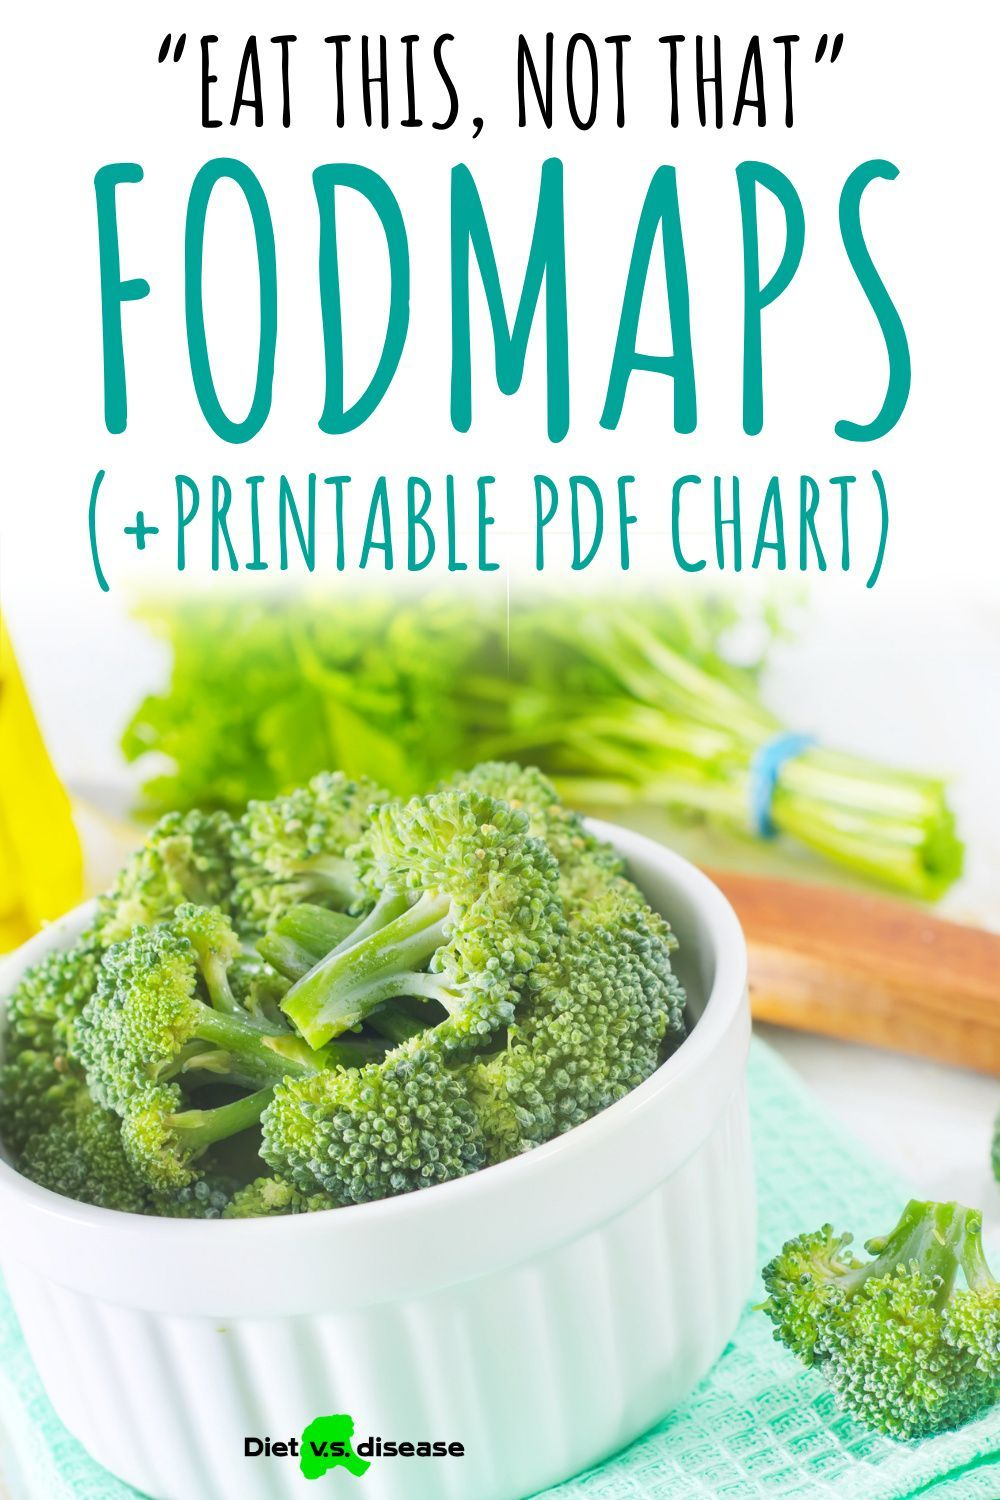 Eat This Not That Fodmaps Food List Printable Pdf Chart Low Fodmap Diet Recipes Fodmap Diet Recipes Nutrition Facts Dietitian